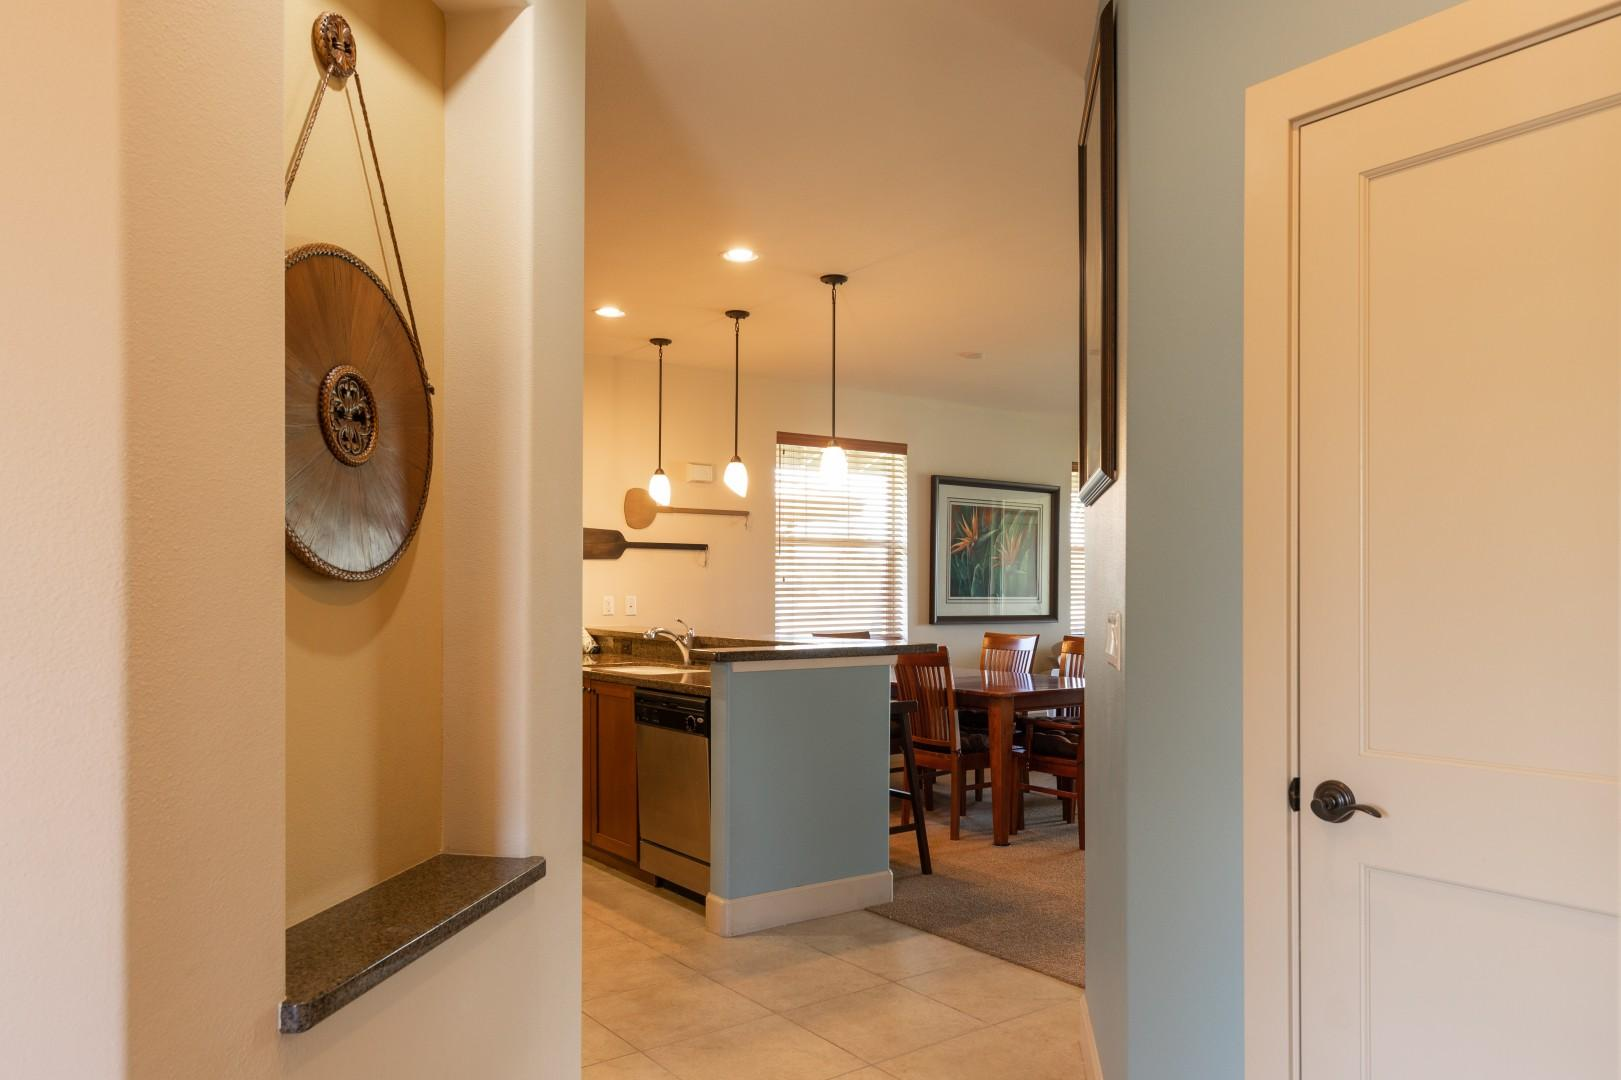 The guest suite is located to the left of the entrance into the unit provding privacy from the other rooms.